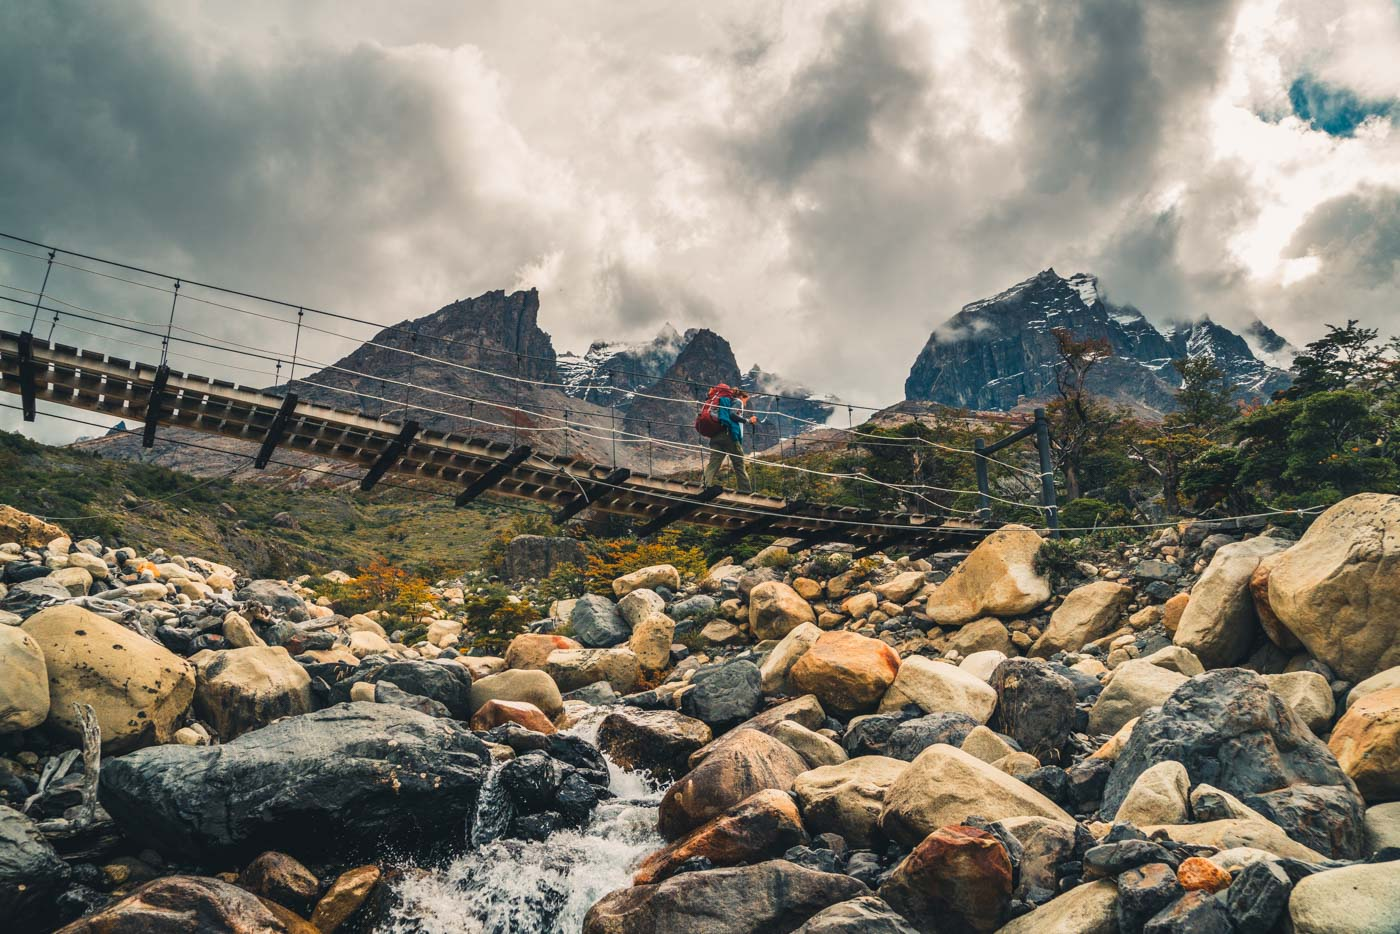 On the trail towards Los Cuernos, Torres del Paine National Park